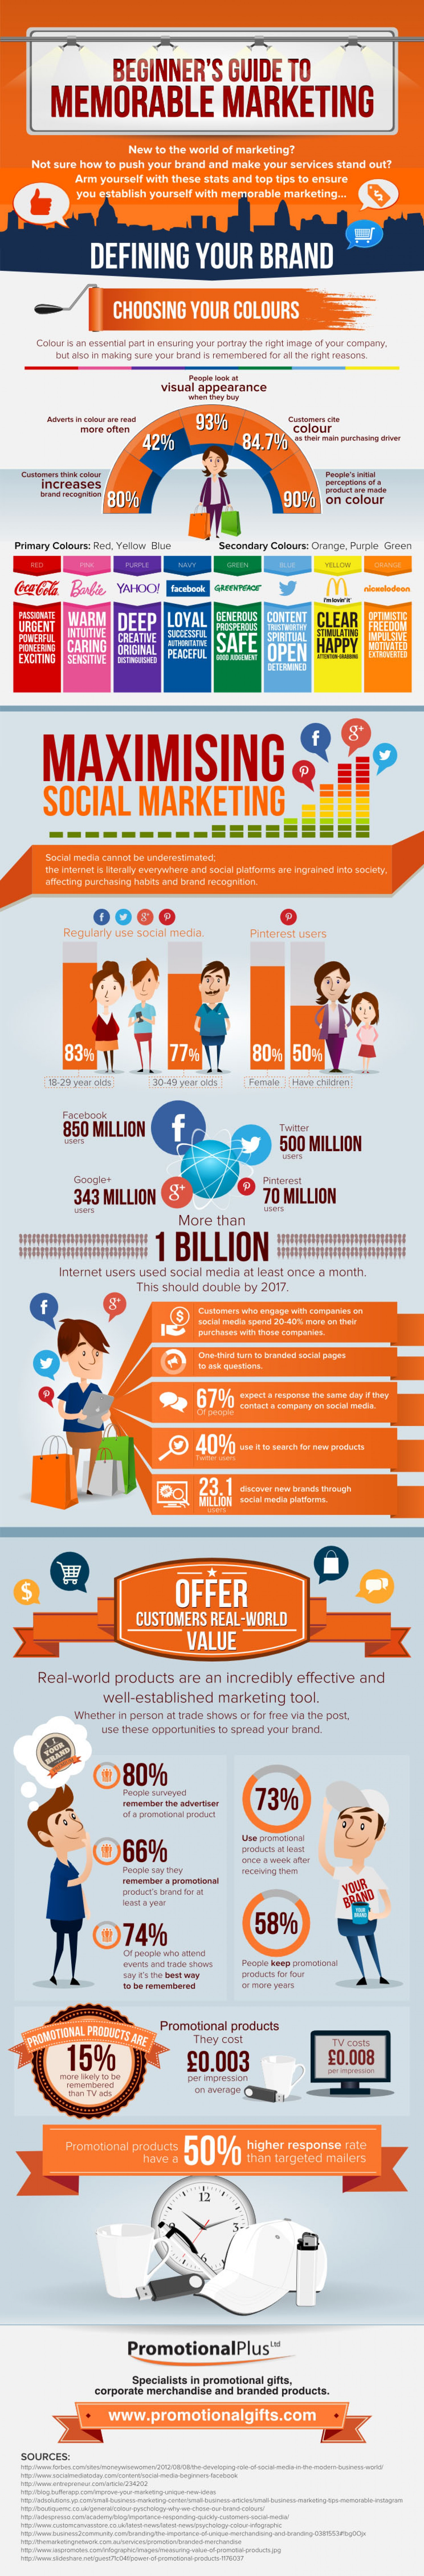 Infographic Target Market's Attention with Epic Brand Marketing